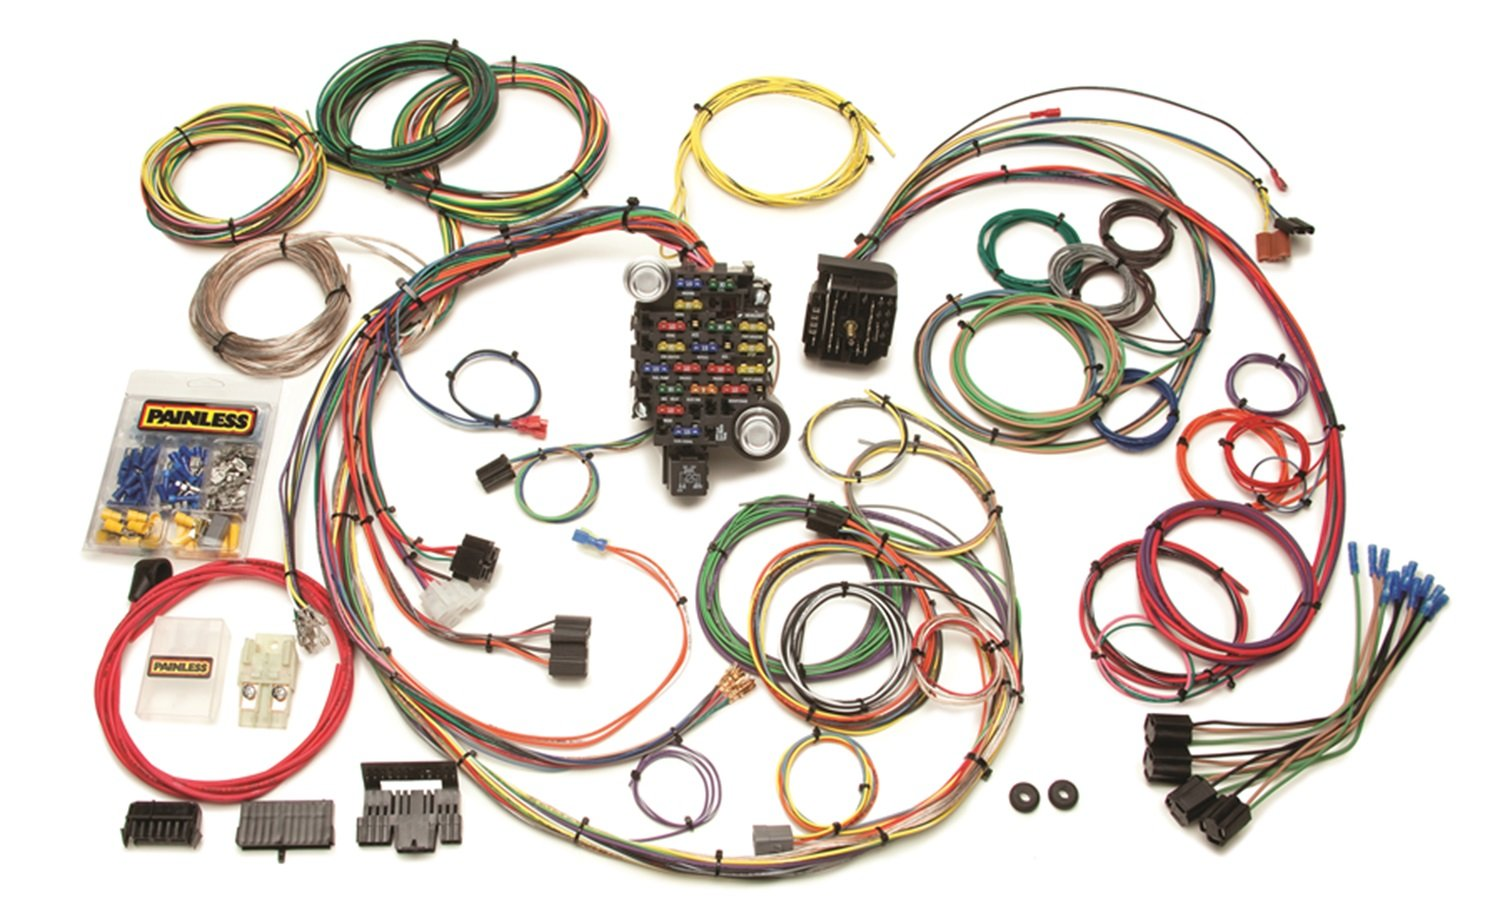 71RvMxx3qDL._SL1500_ amazon com painless 20102 custom wiring harness automotive automotive wiring harness at reclaimingppi.co